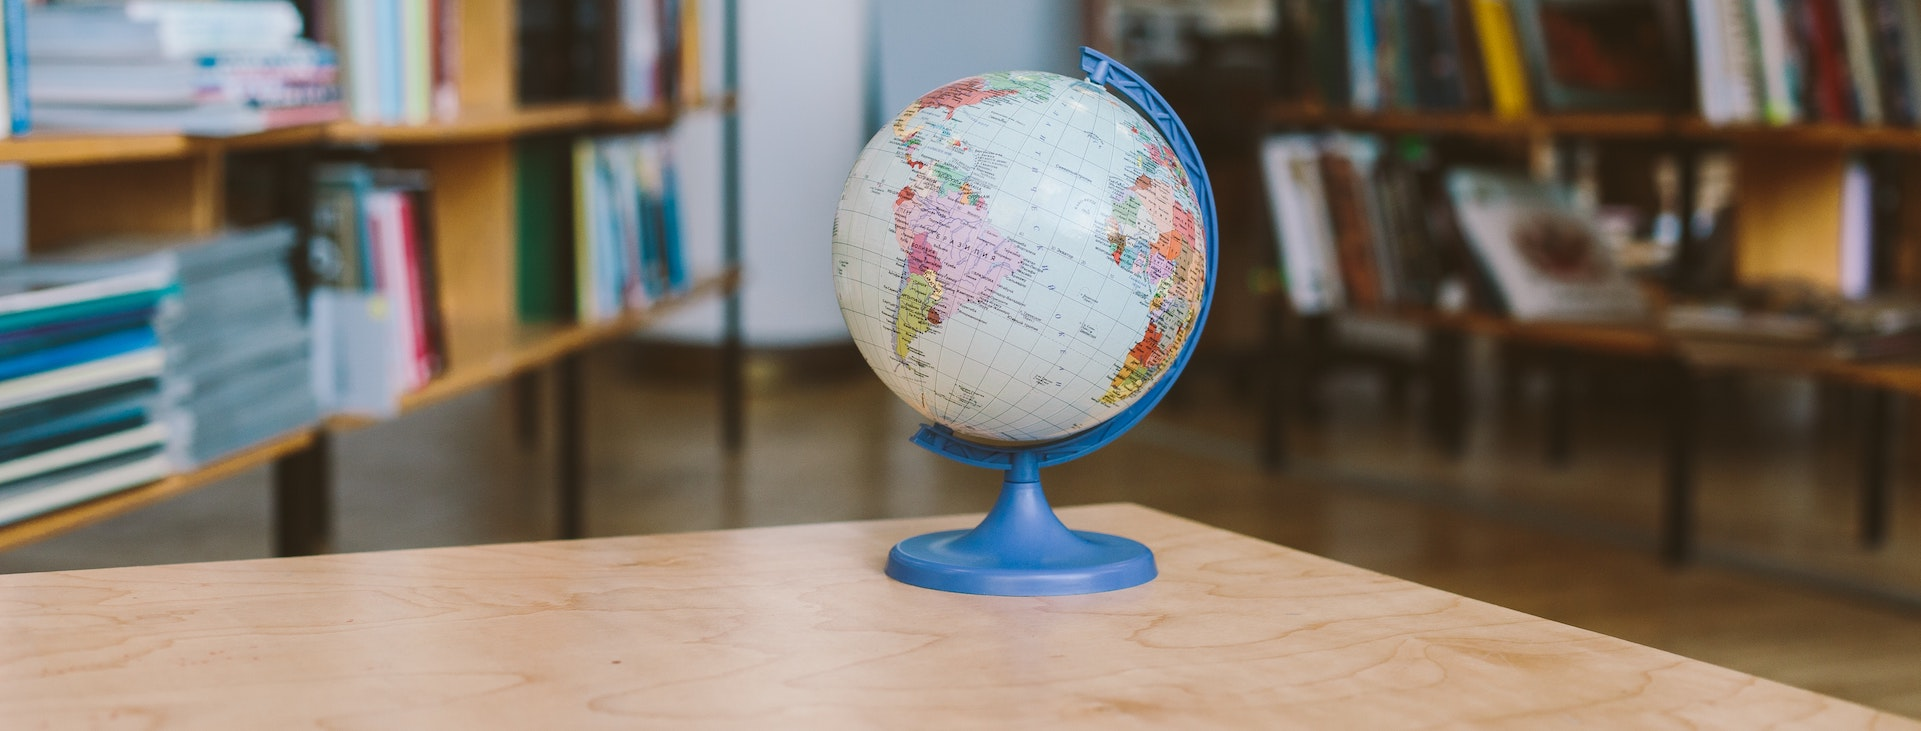 Globe sitting on table in library